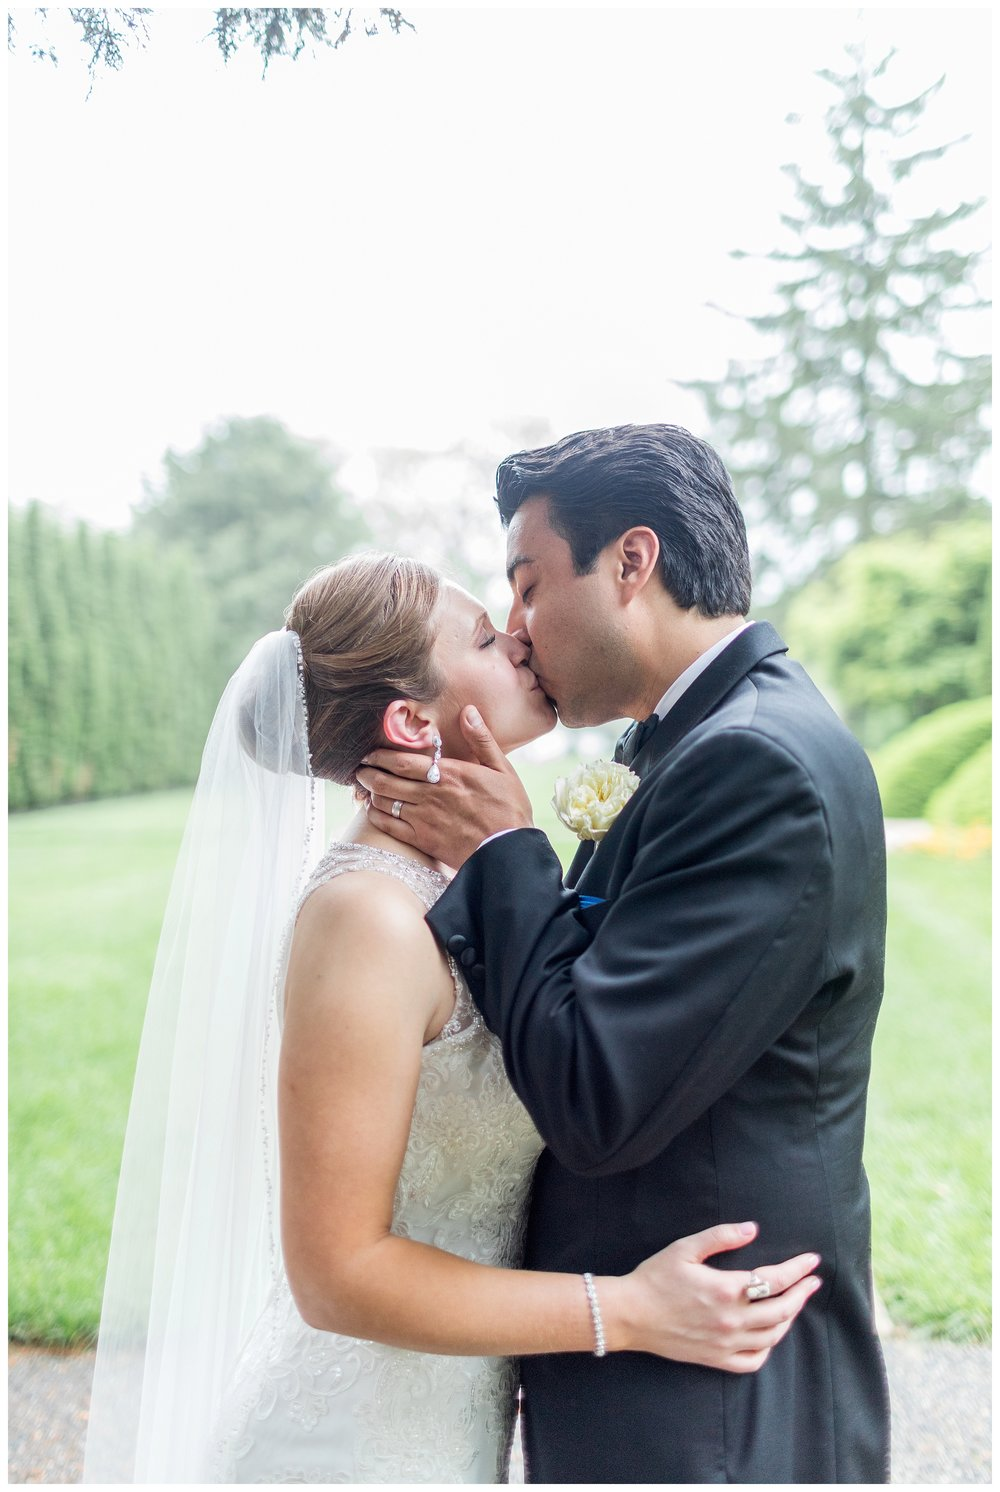 The Mansion at Valley Country Club Wedding Maryland Wedding Photographer Kir Tuben_0037.jpg